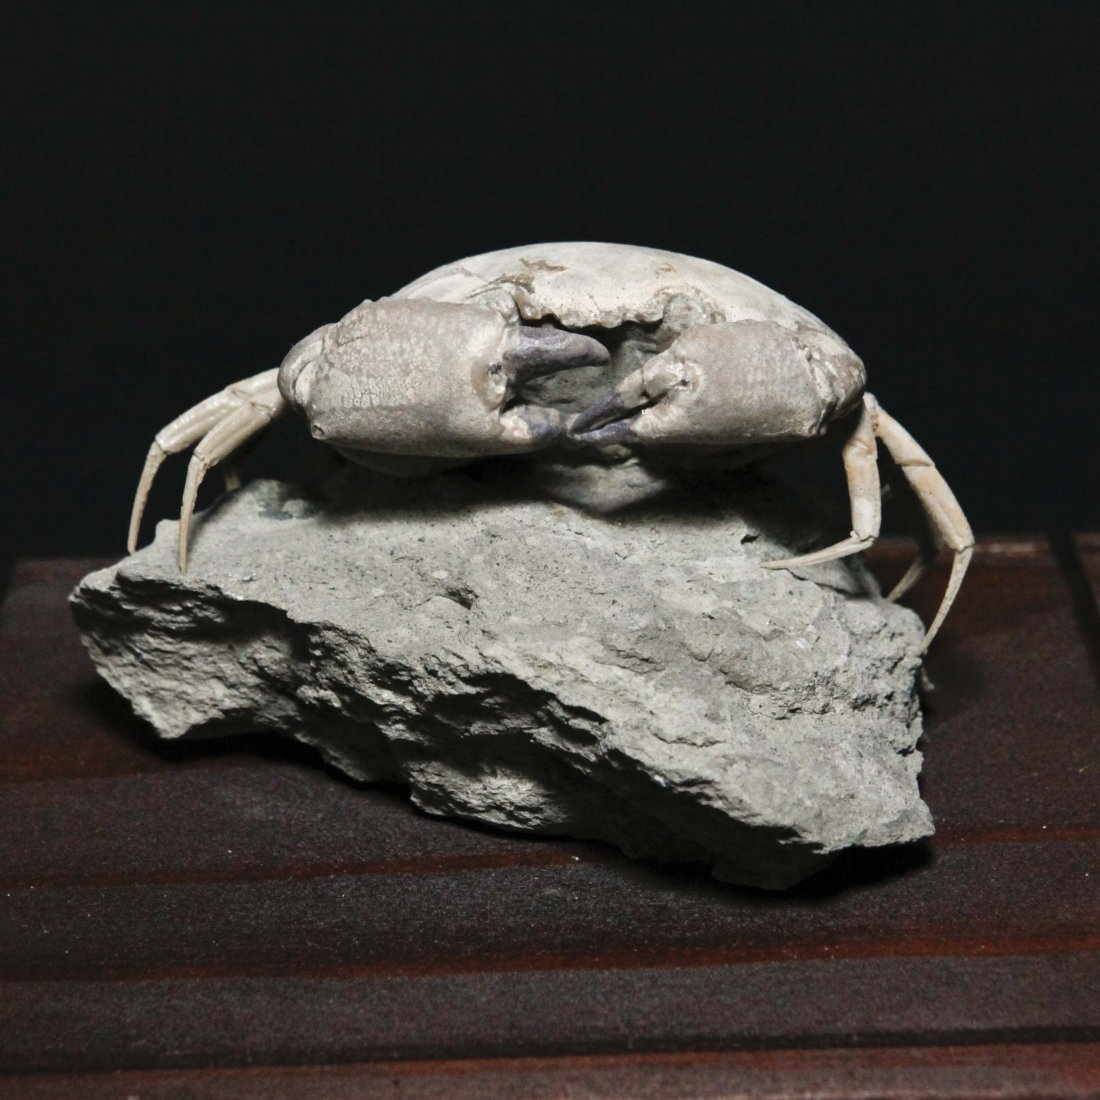 Fossilized Crab, Italy